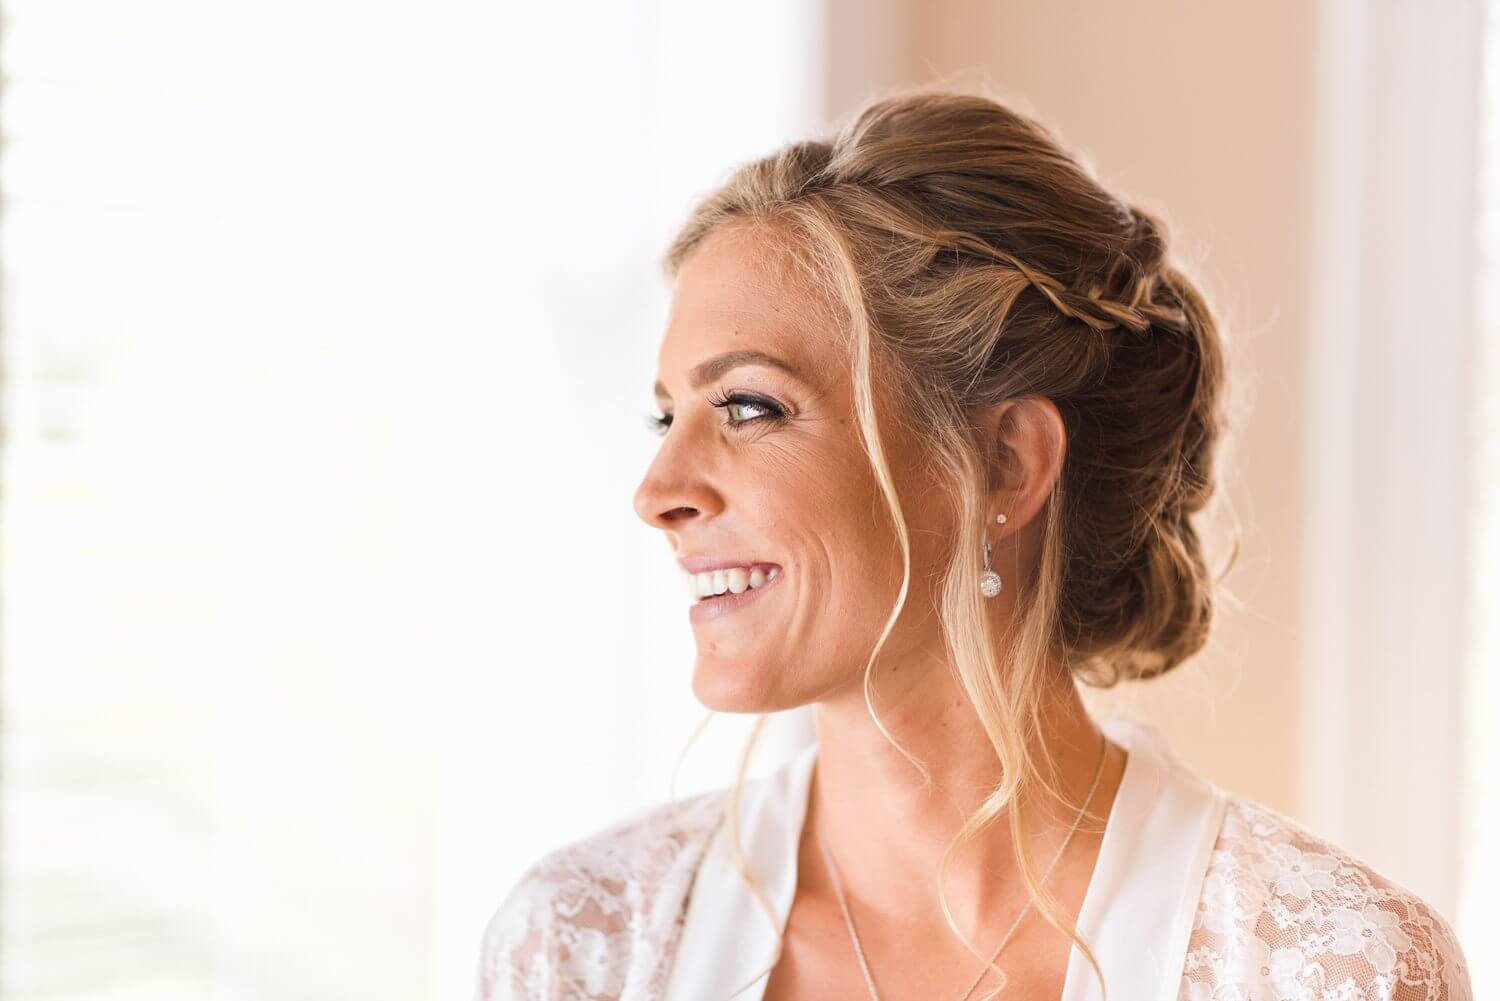 Freas Photography Southernmost House Wedding 28 - Boho Styled Key West Wedding at the Southernmost House in Key West, Florida